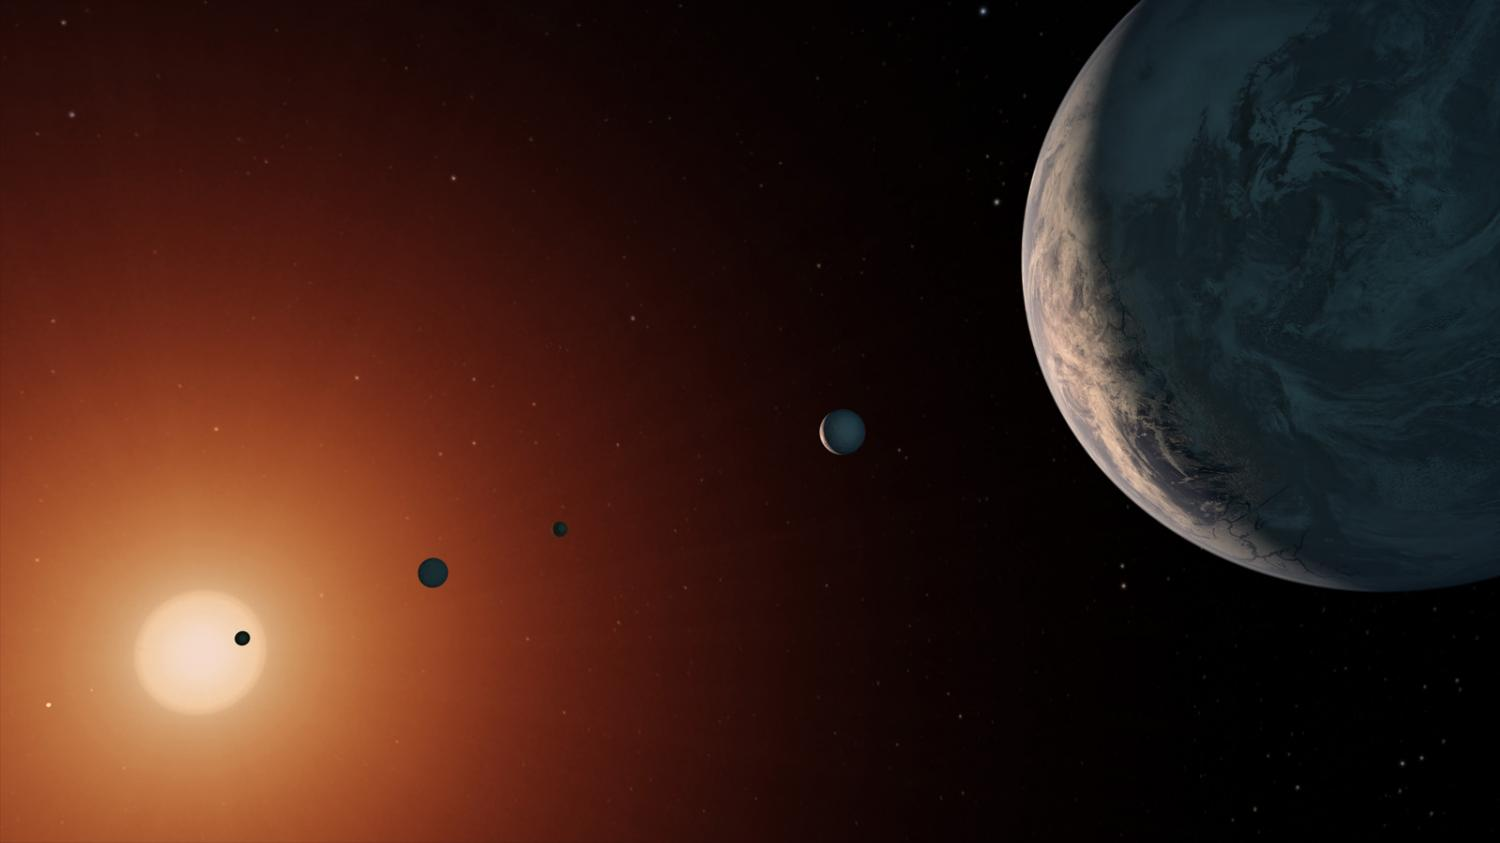 TRAPPIST-1 is older than our solar system